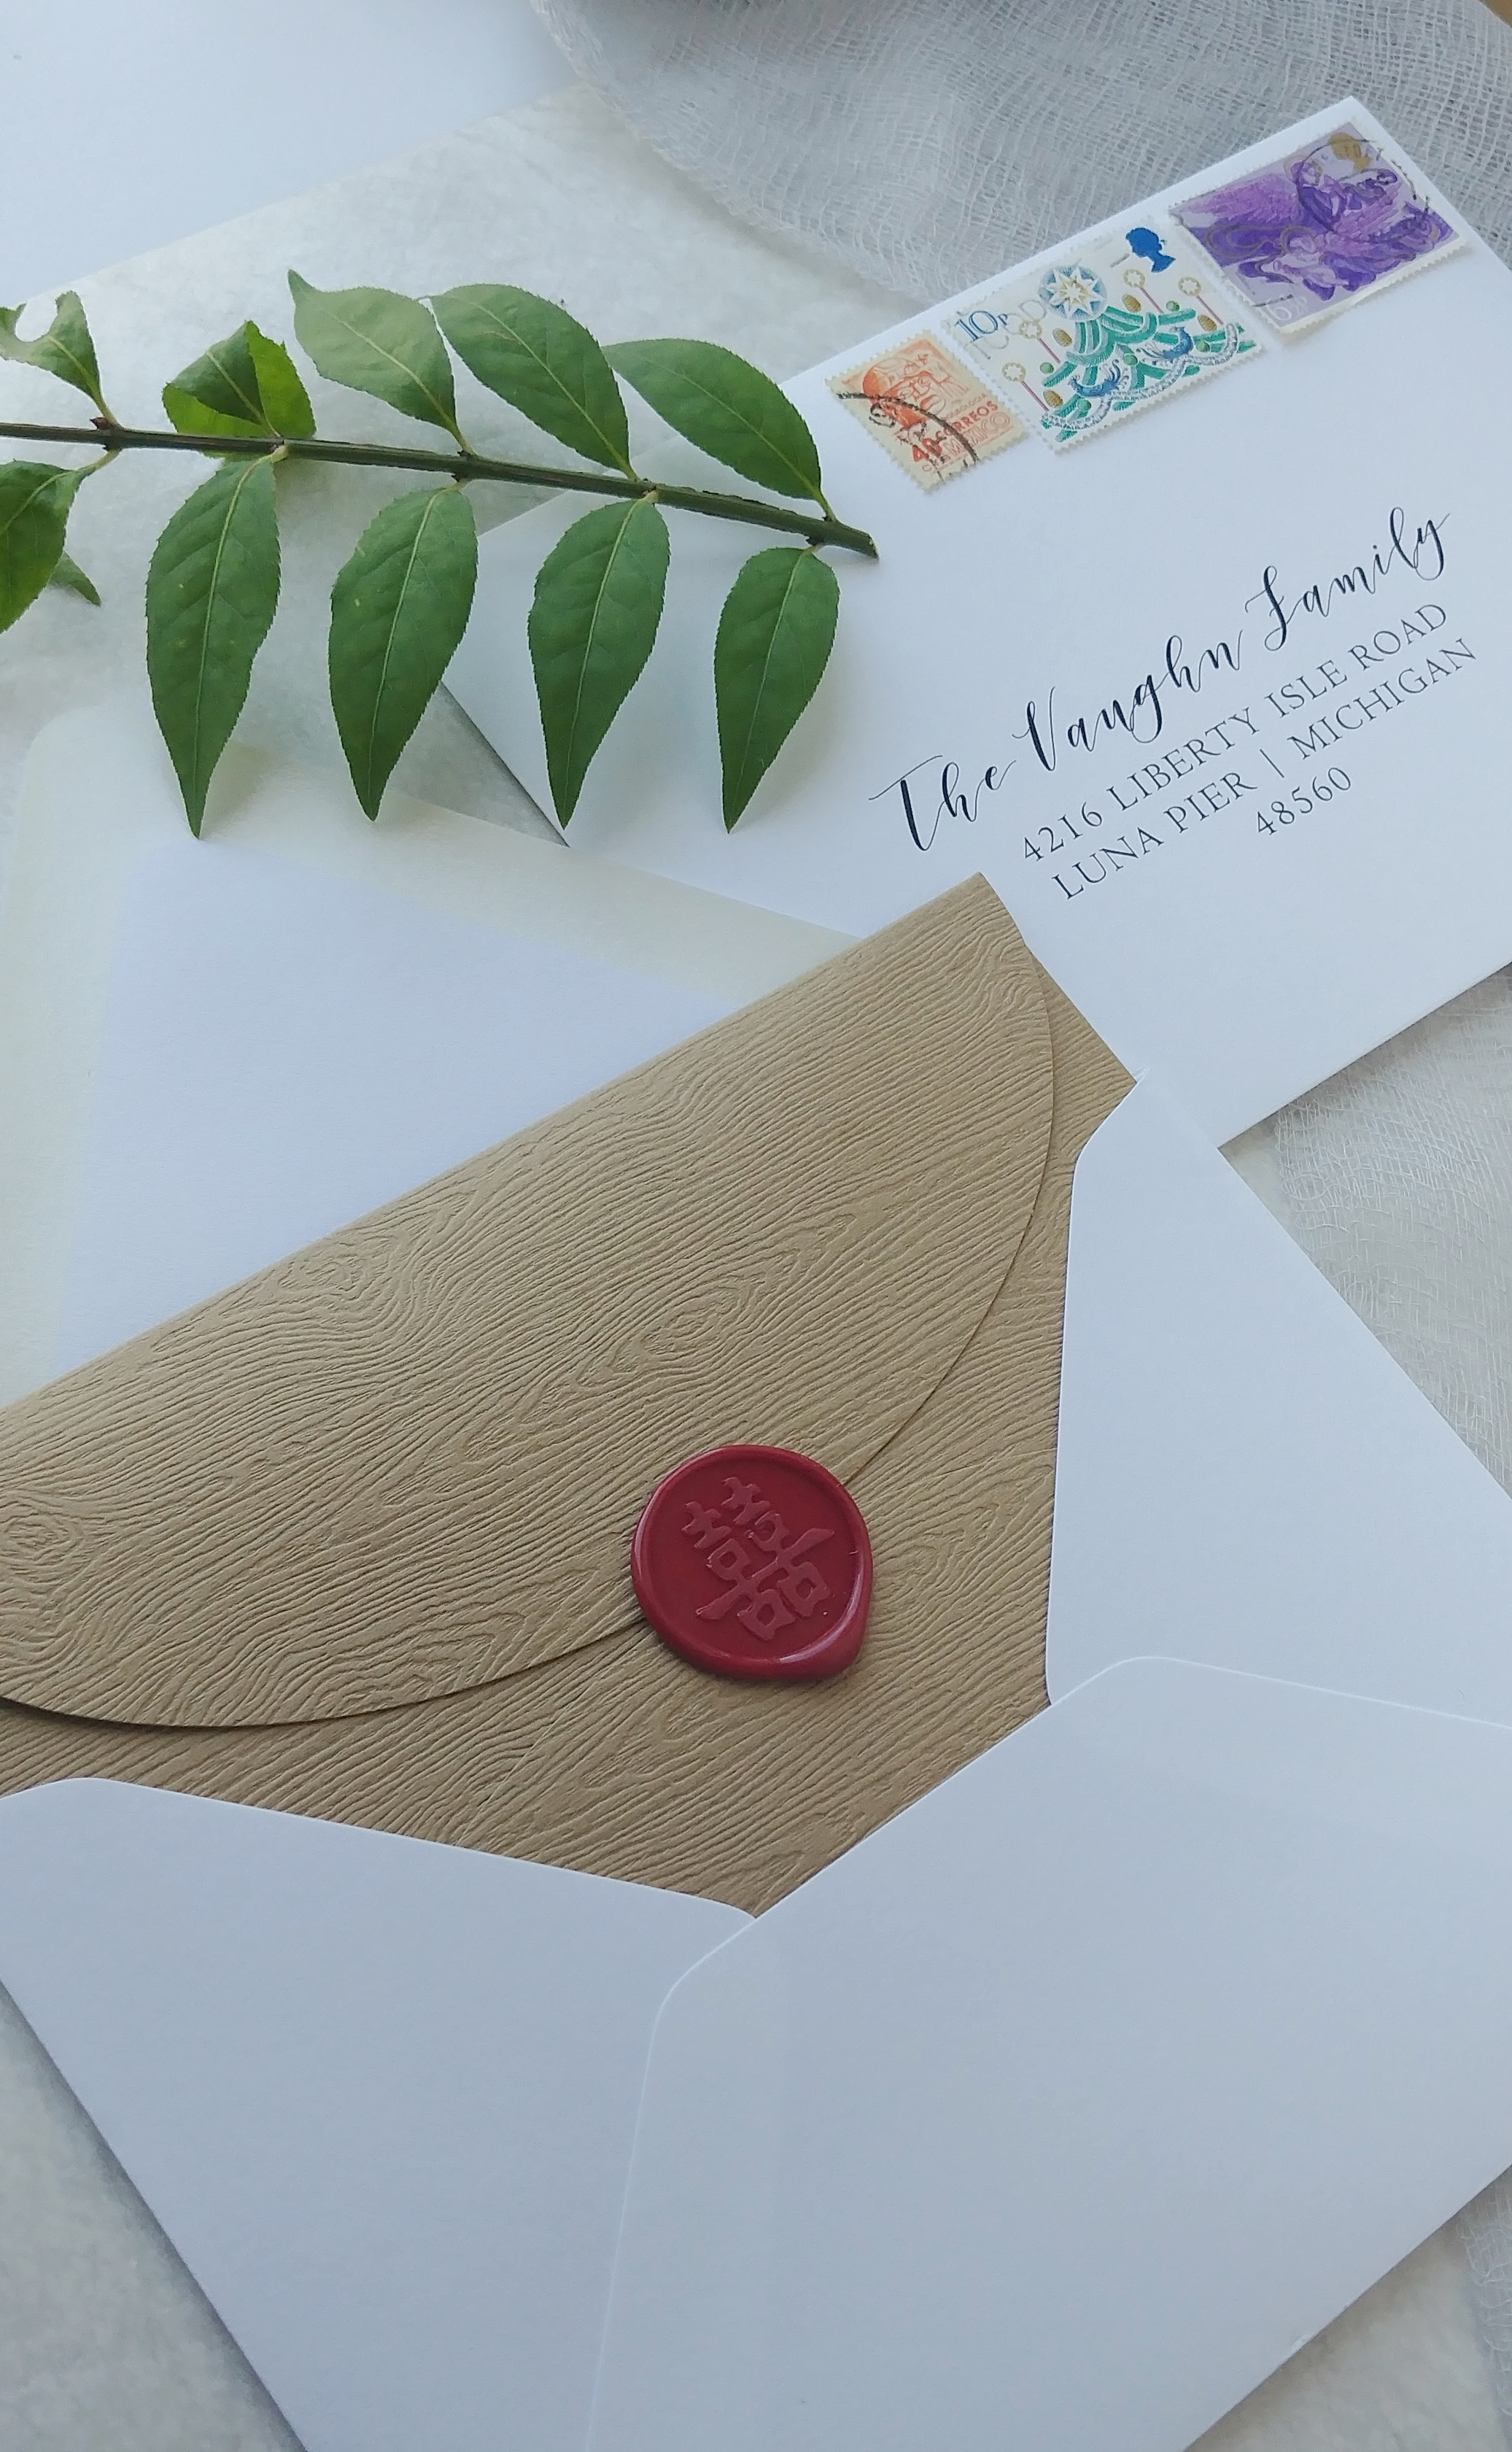 Wood Grain Petal Fold with Red Wax Seal & Envelope Addressing by Cordial Punch Press